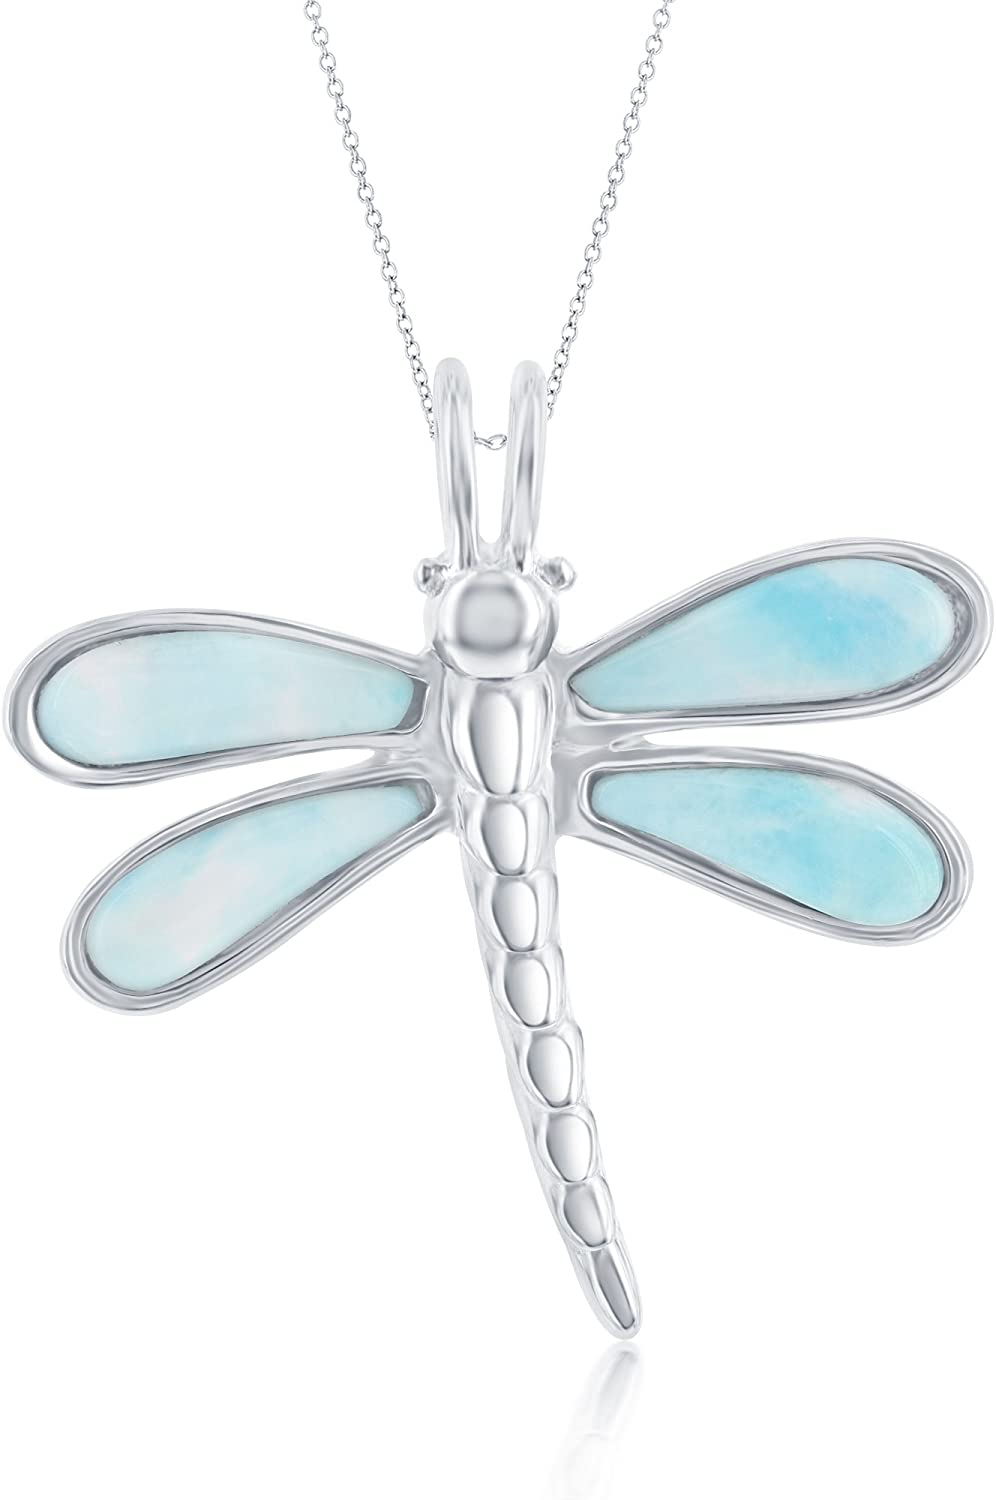 Vintage Blue Gemstone Dragonfly Pendant on Chain Earth and Vegan Friendly Sterling Silver Larimar Heart Dragonfly Pendant Necklace